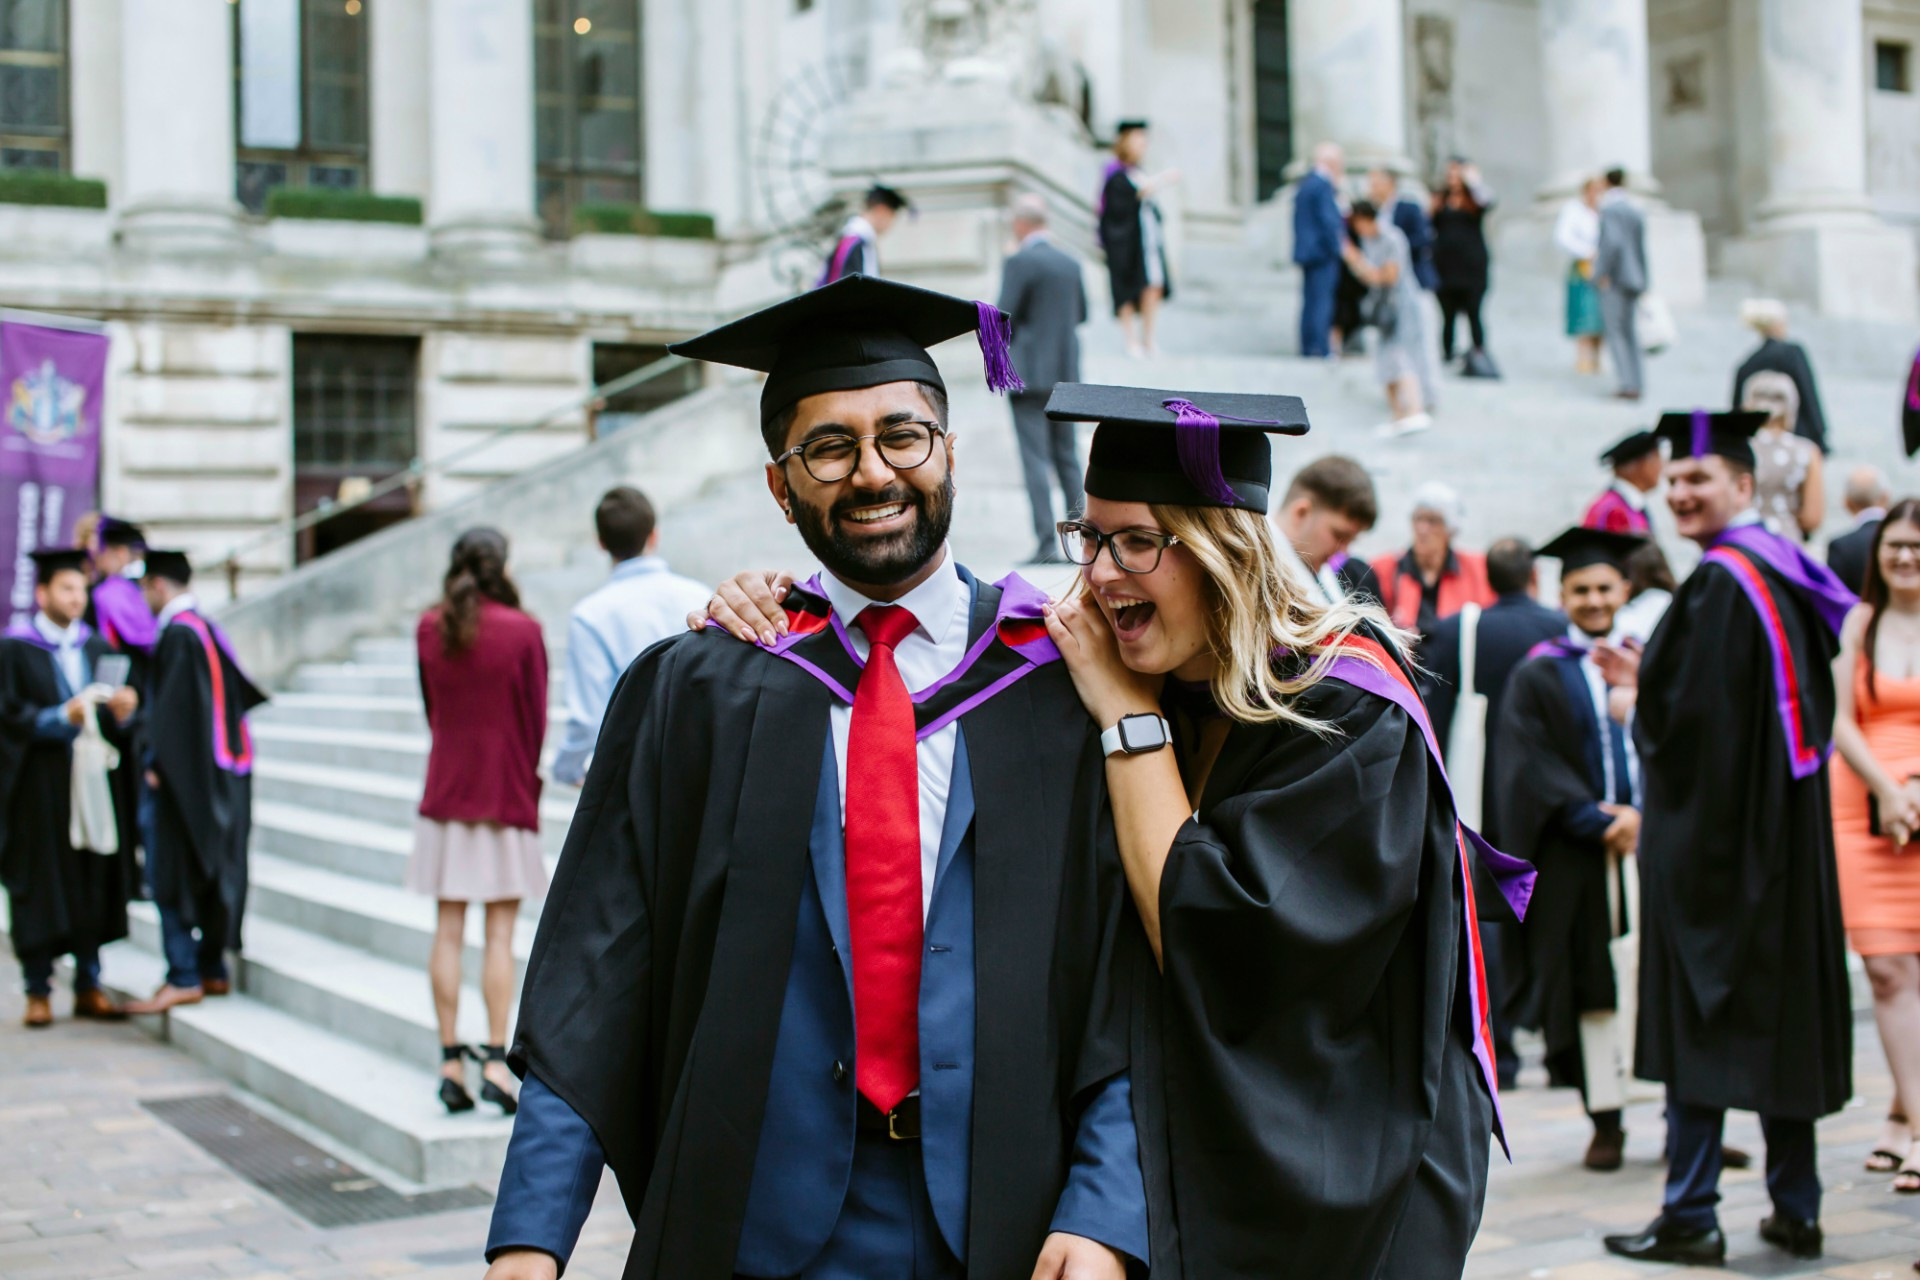 University of Portsmouth ranked 21 in Guardian University Guide